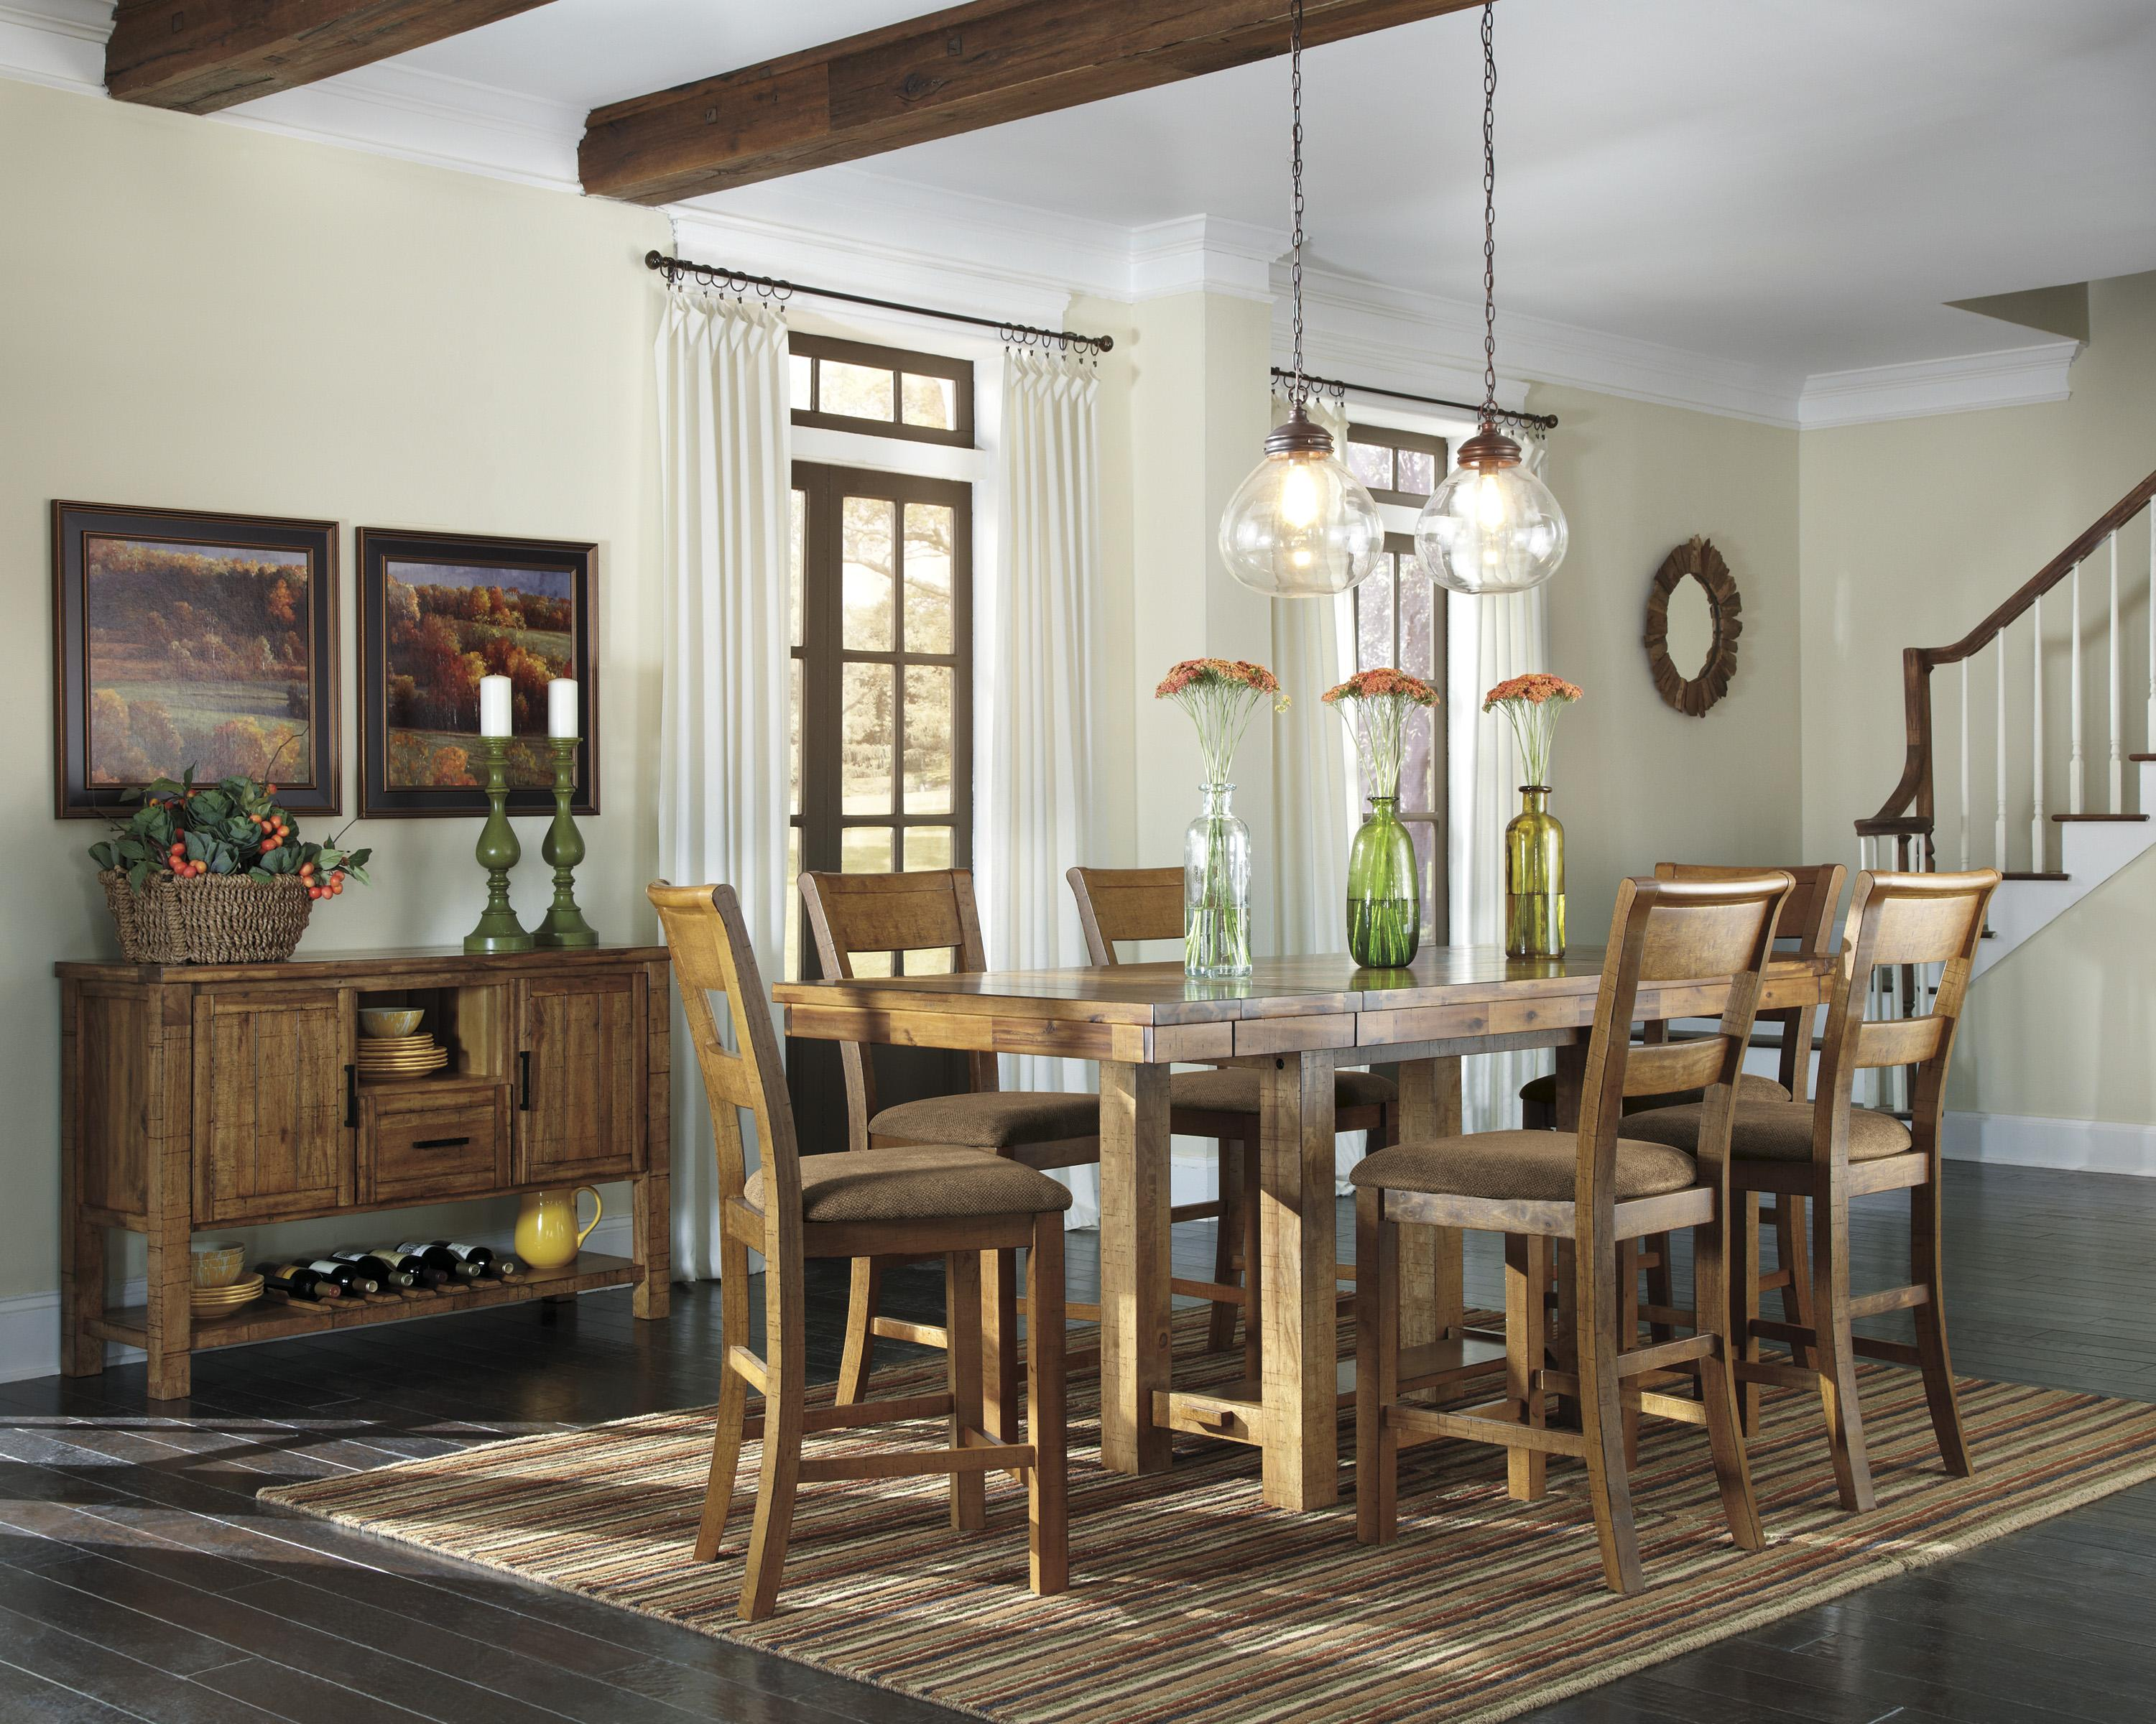 Signature Design by Ashley Krinden Casual Dining Room Group - Item Number: D653 Dining Room Group 1